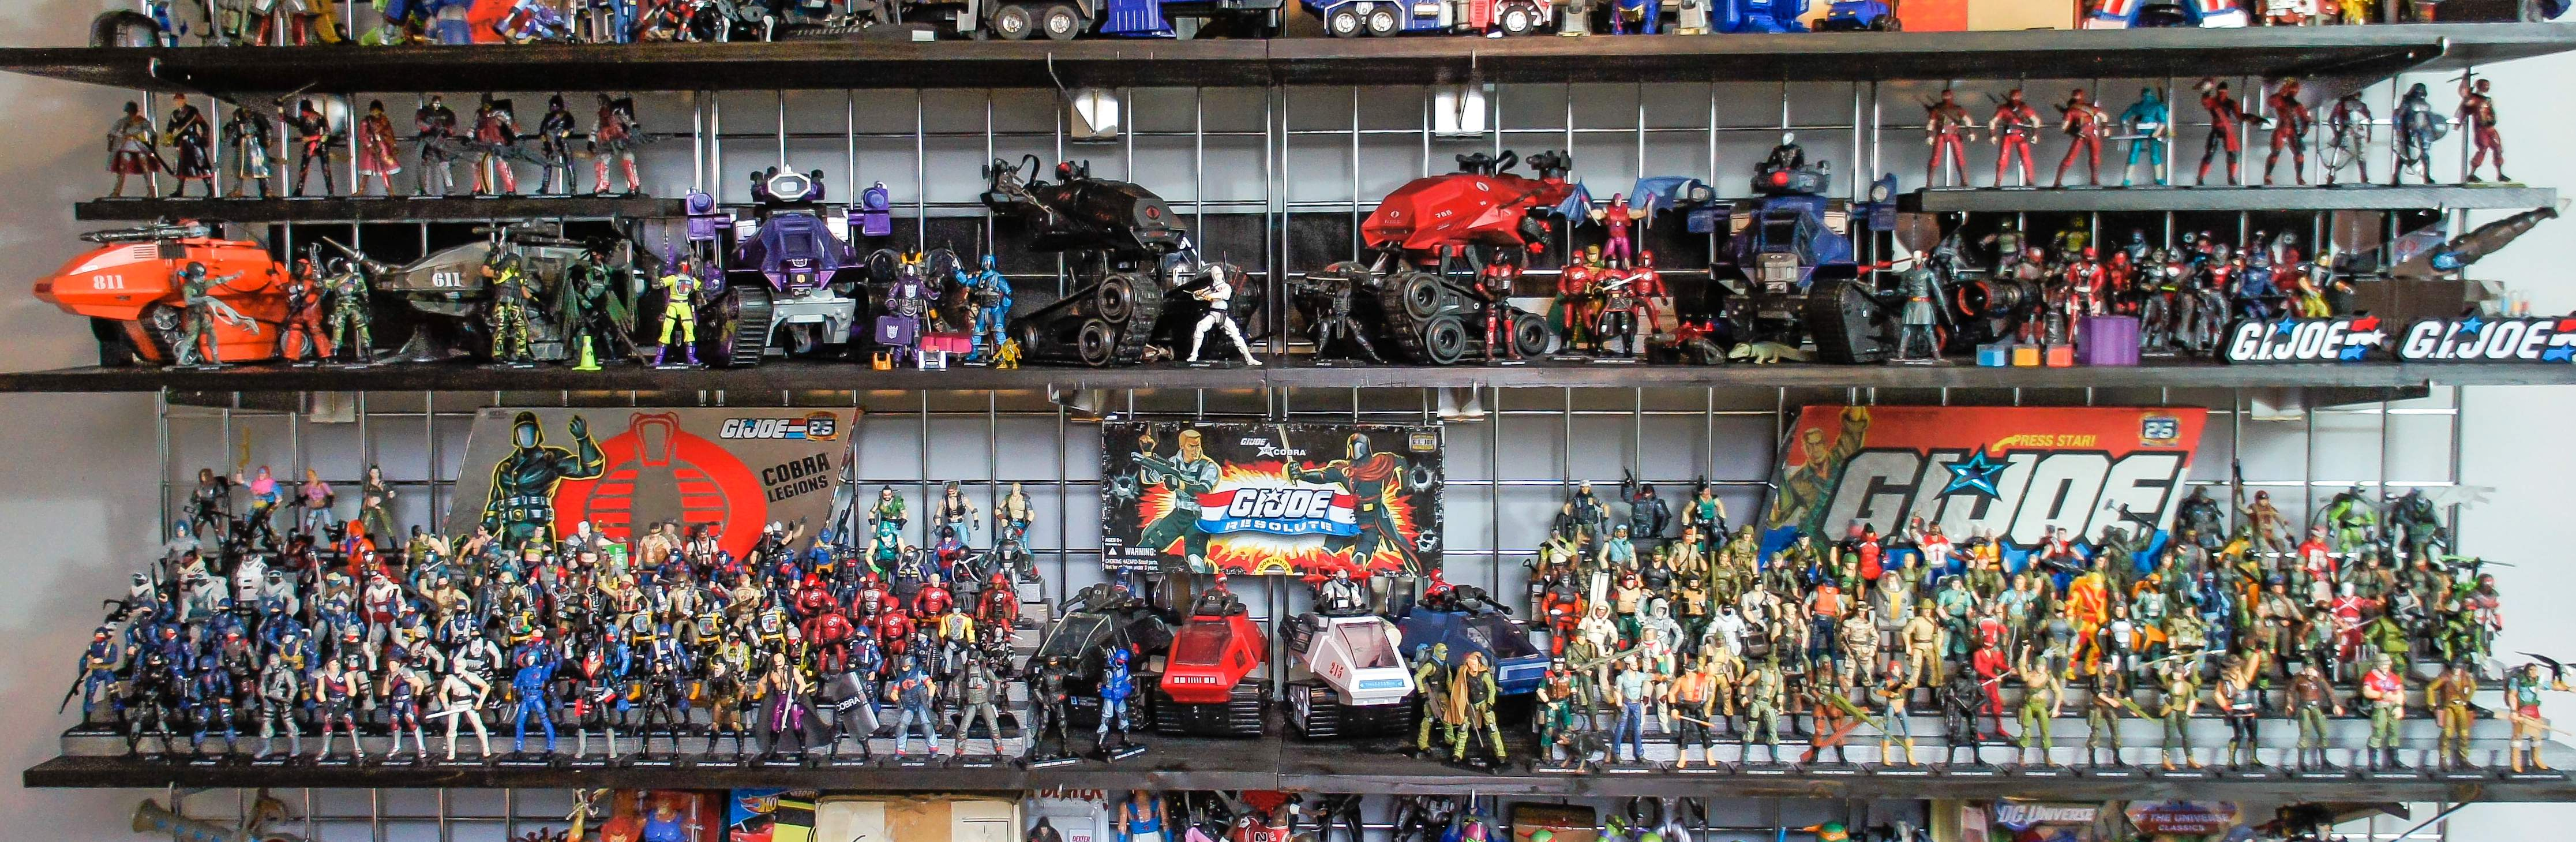 80 Toy Action Figure Shelves - 7_Simple 80 Toy Action Figure Shelves - 7  You Should Have_851335.jpg